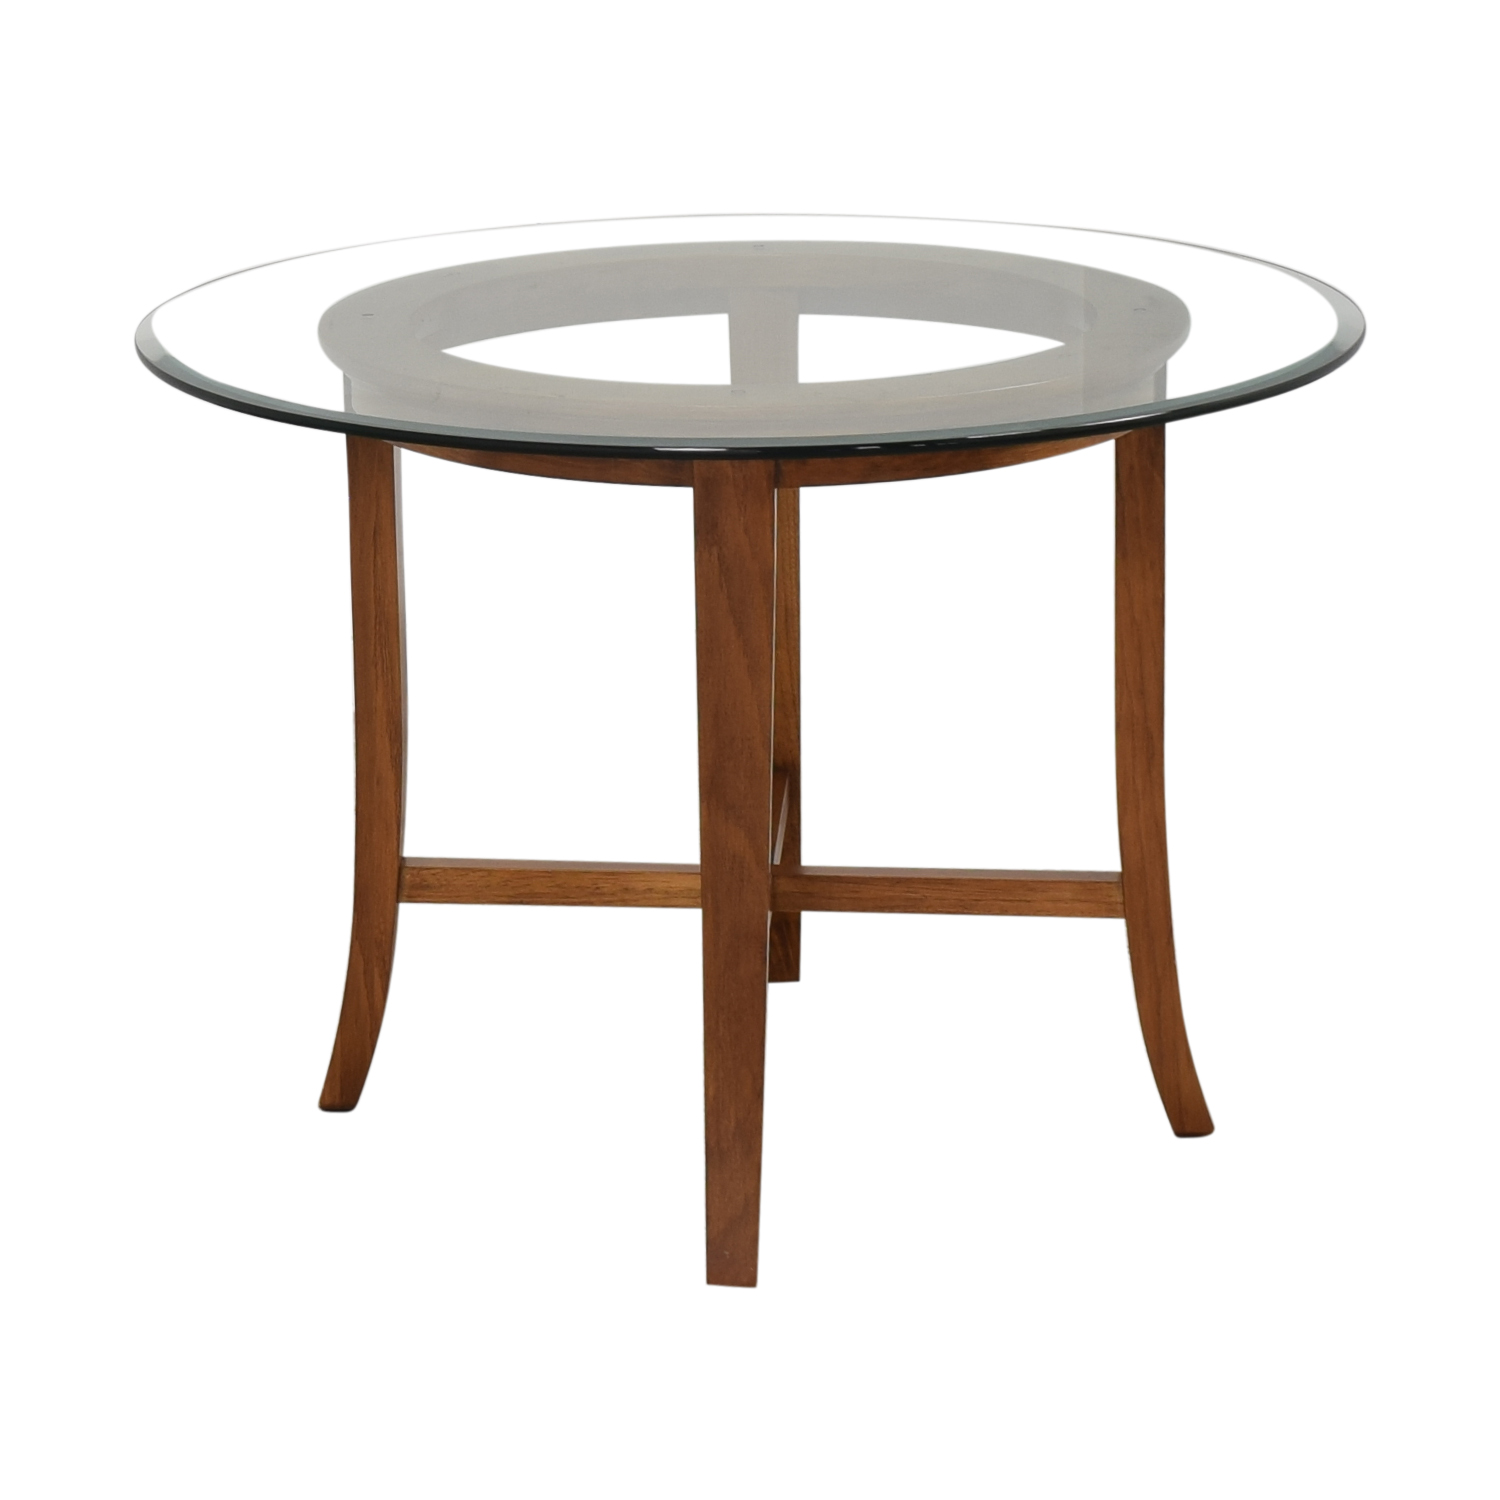 buy Crate & Barrel Halo Dining Table Crate & Barrel Dinner Tables